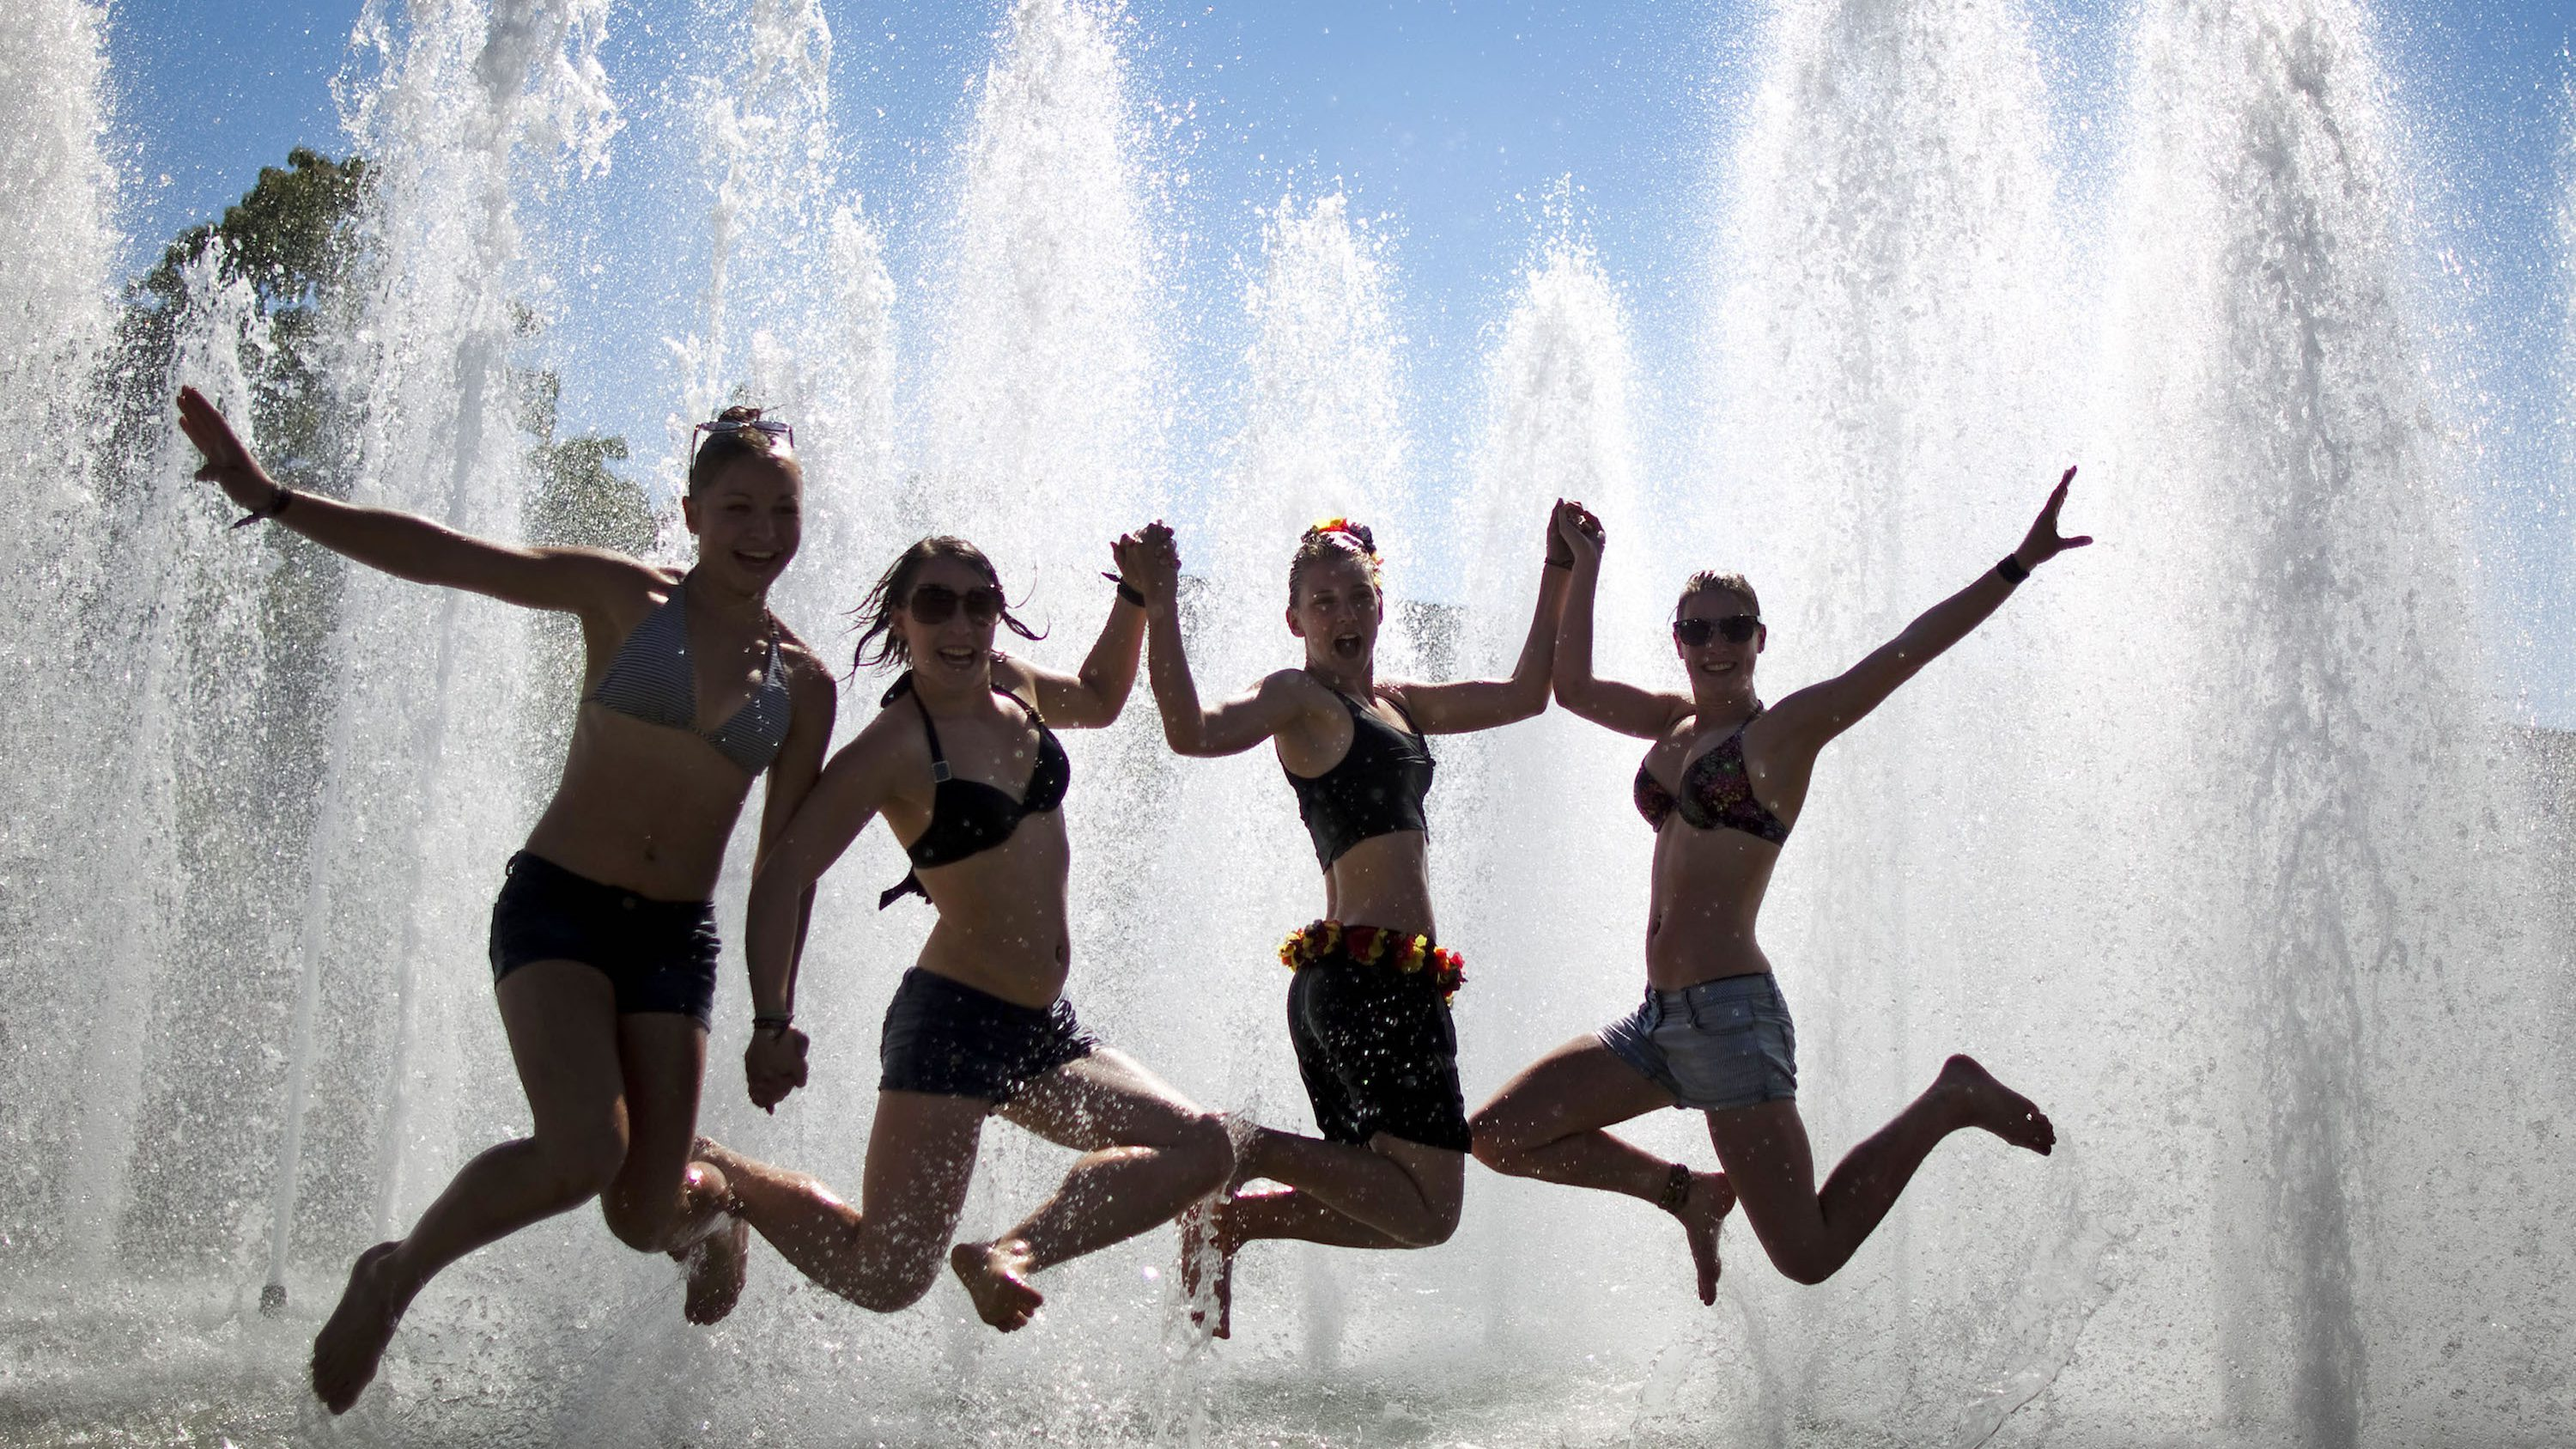 Gymnasts pose for a picture in a fountain on the second day of the 2011 World Gymnaestrada in Lausanne July 11, 2011. More than 20,000 participants from around the world will join in gymnastic performances over the next seven days at the non-competitive event.